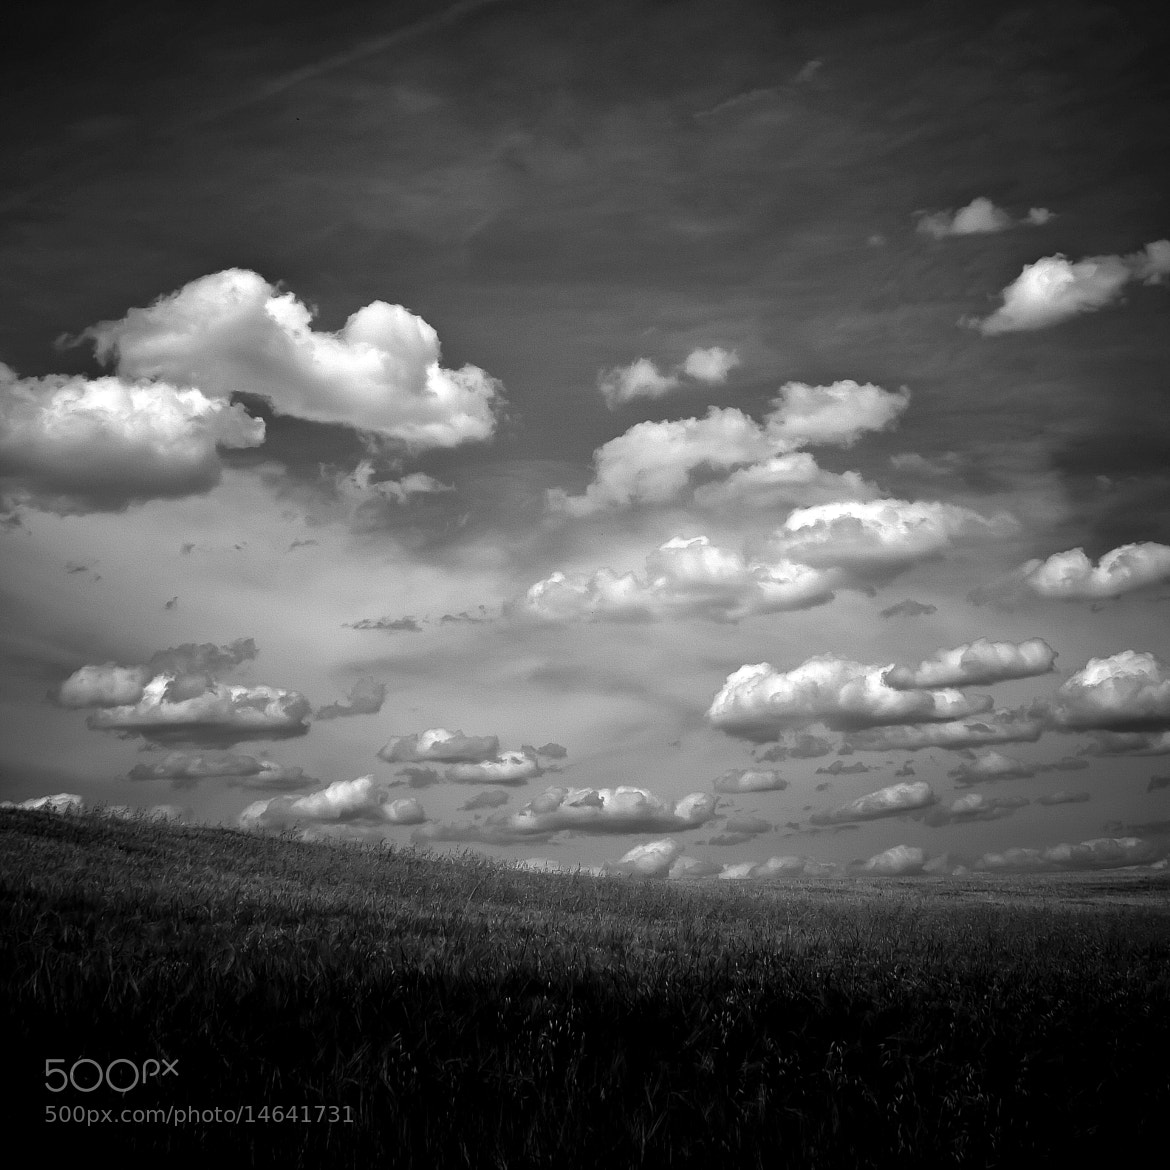 Photograph Passing Clouds by Luis Mariano González on 500px